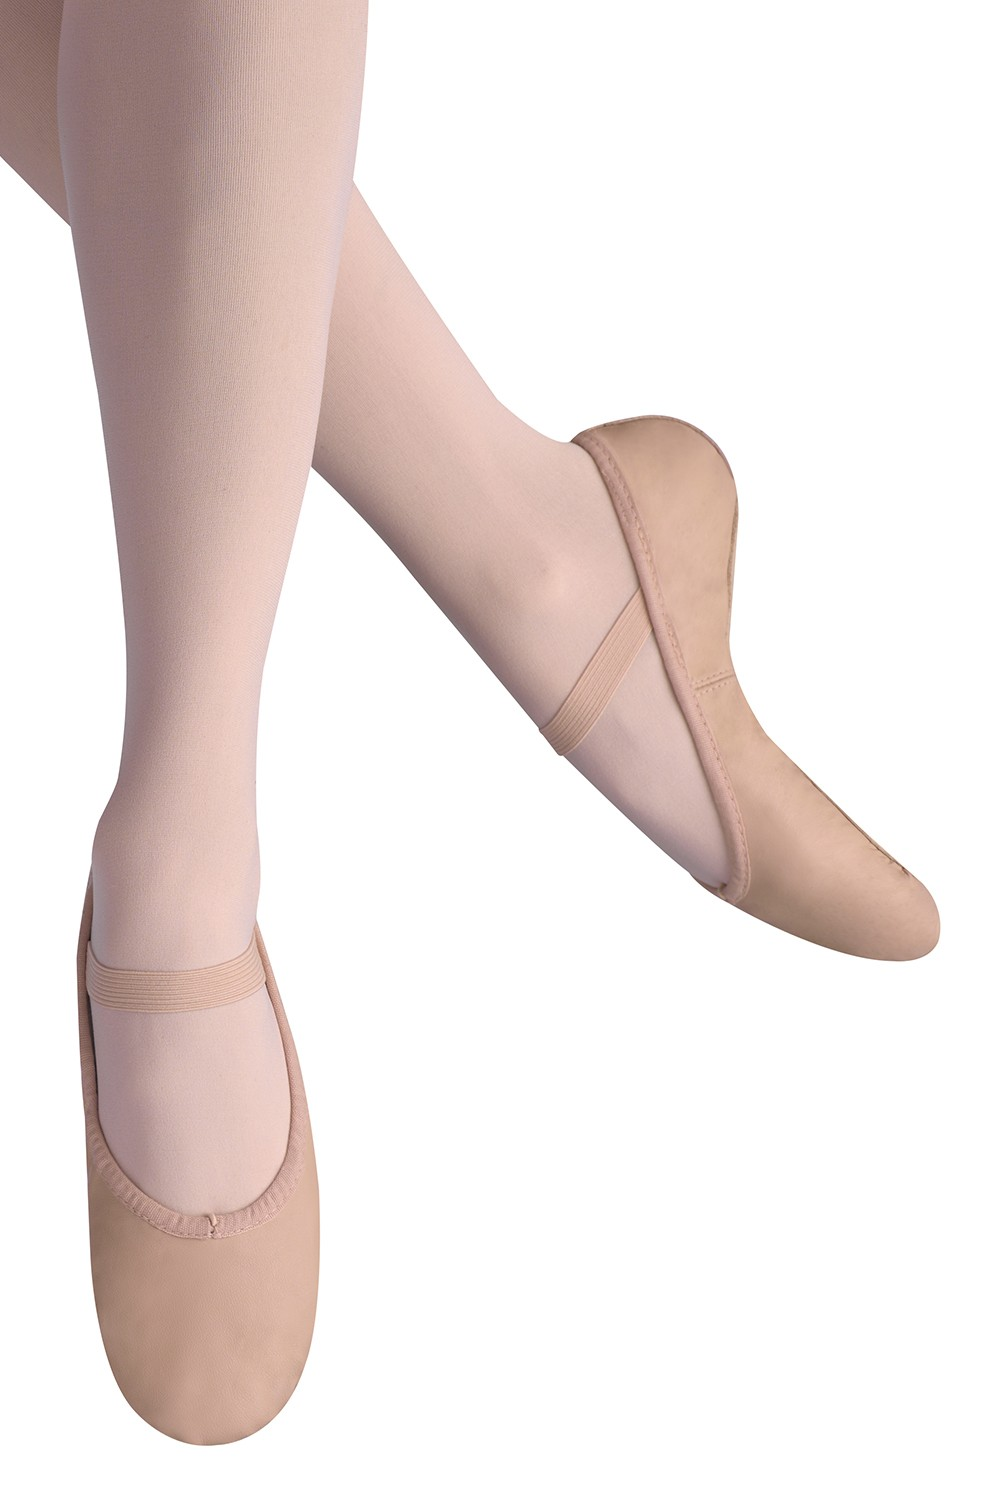 Ballet Russe Women's Ballet Shoes